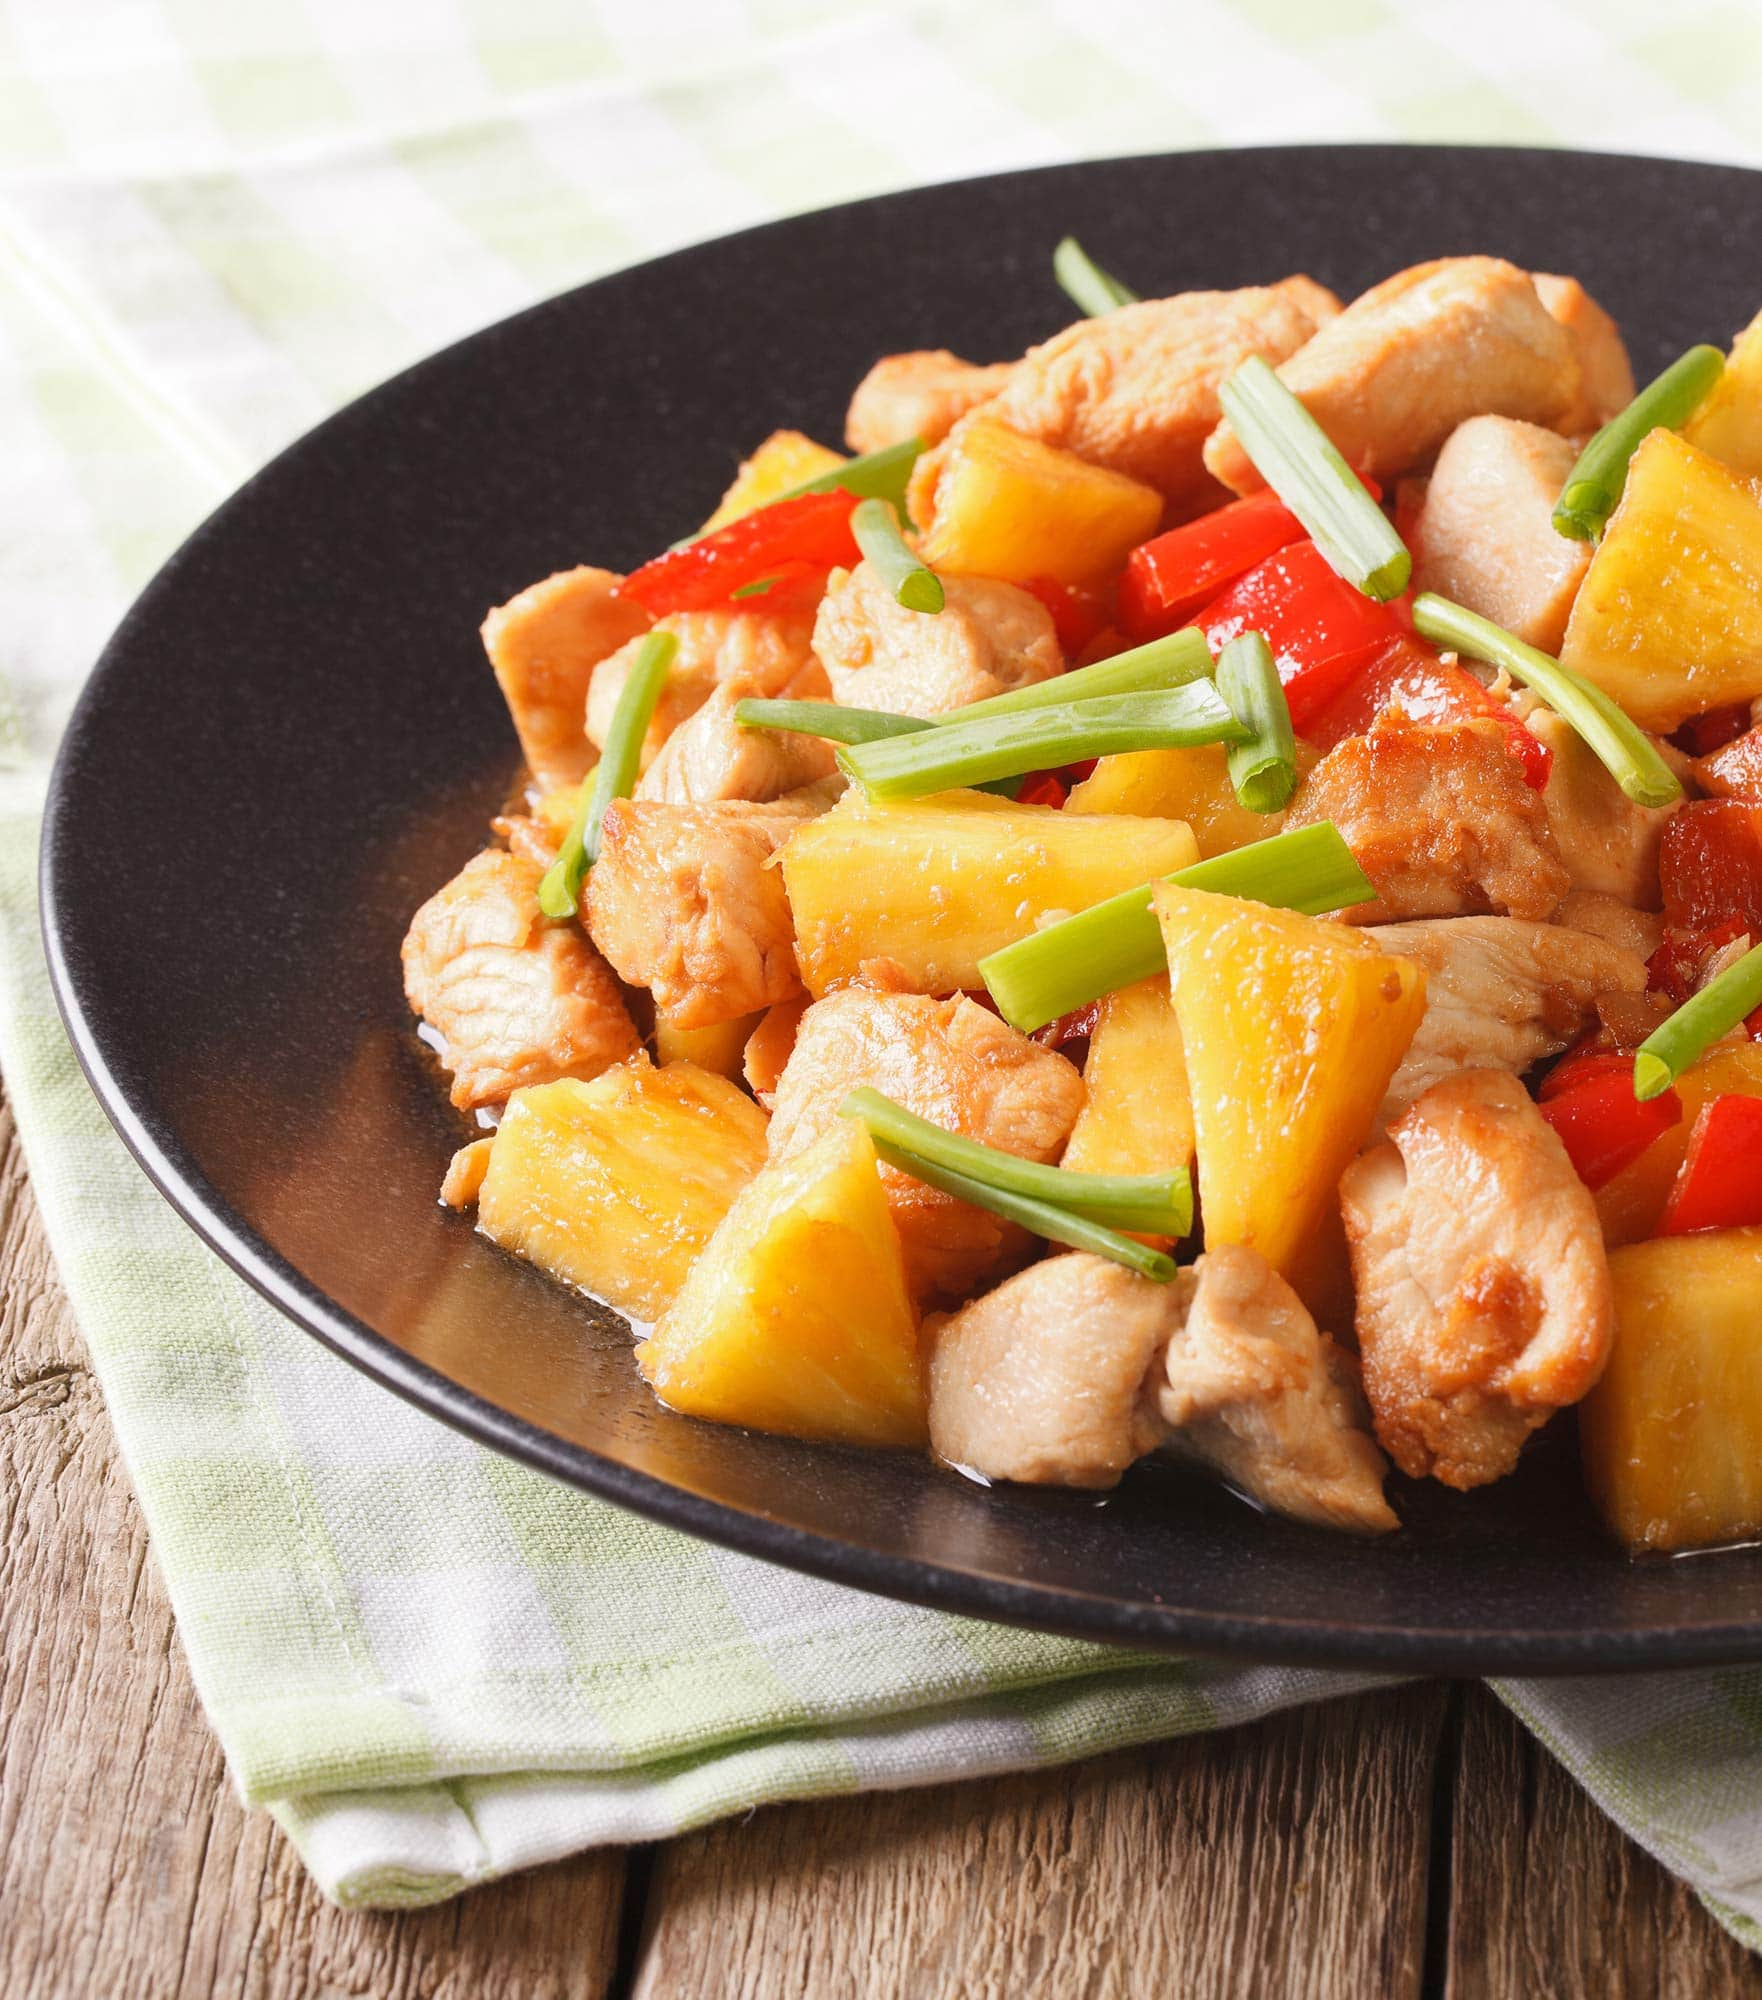 Stir Fry with Sweet & Sour Sauce